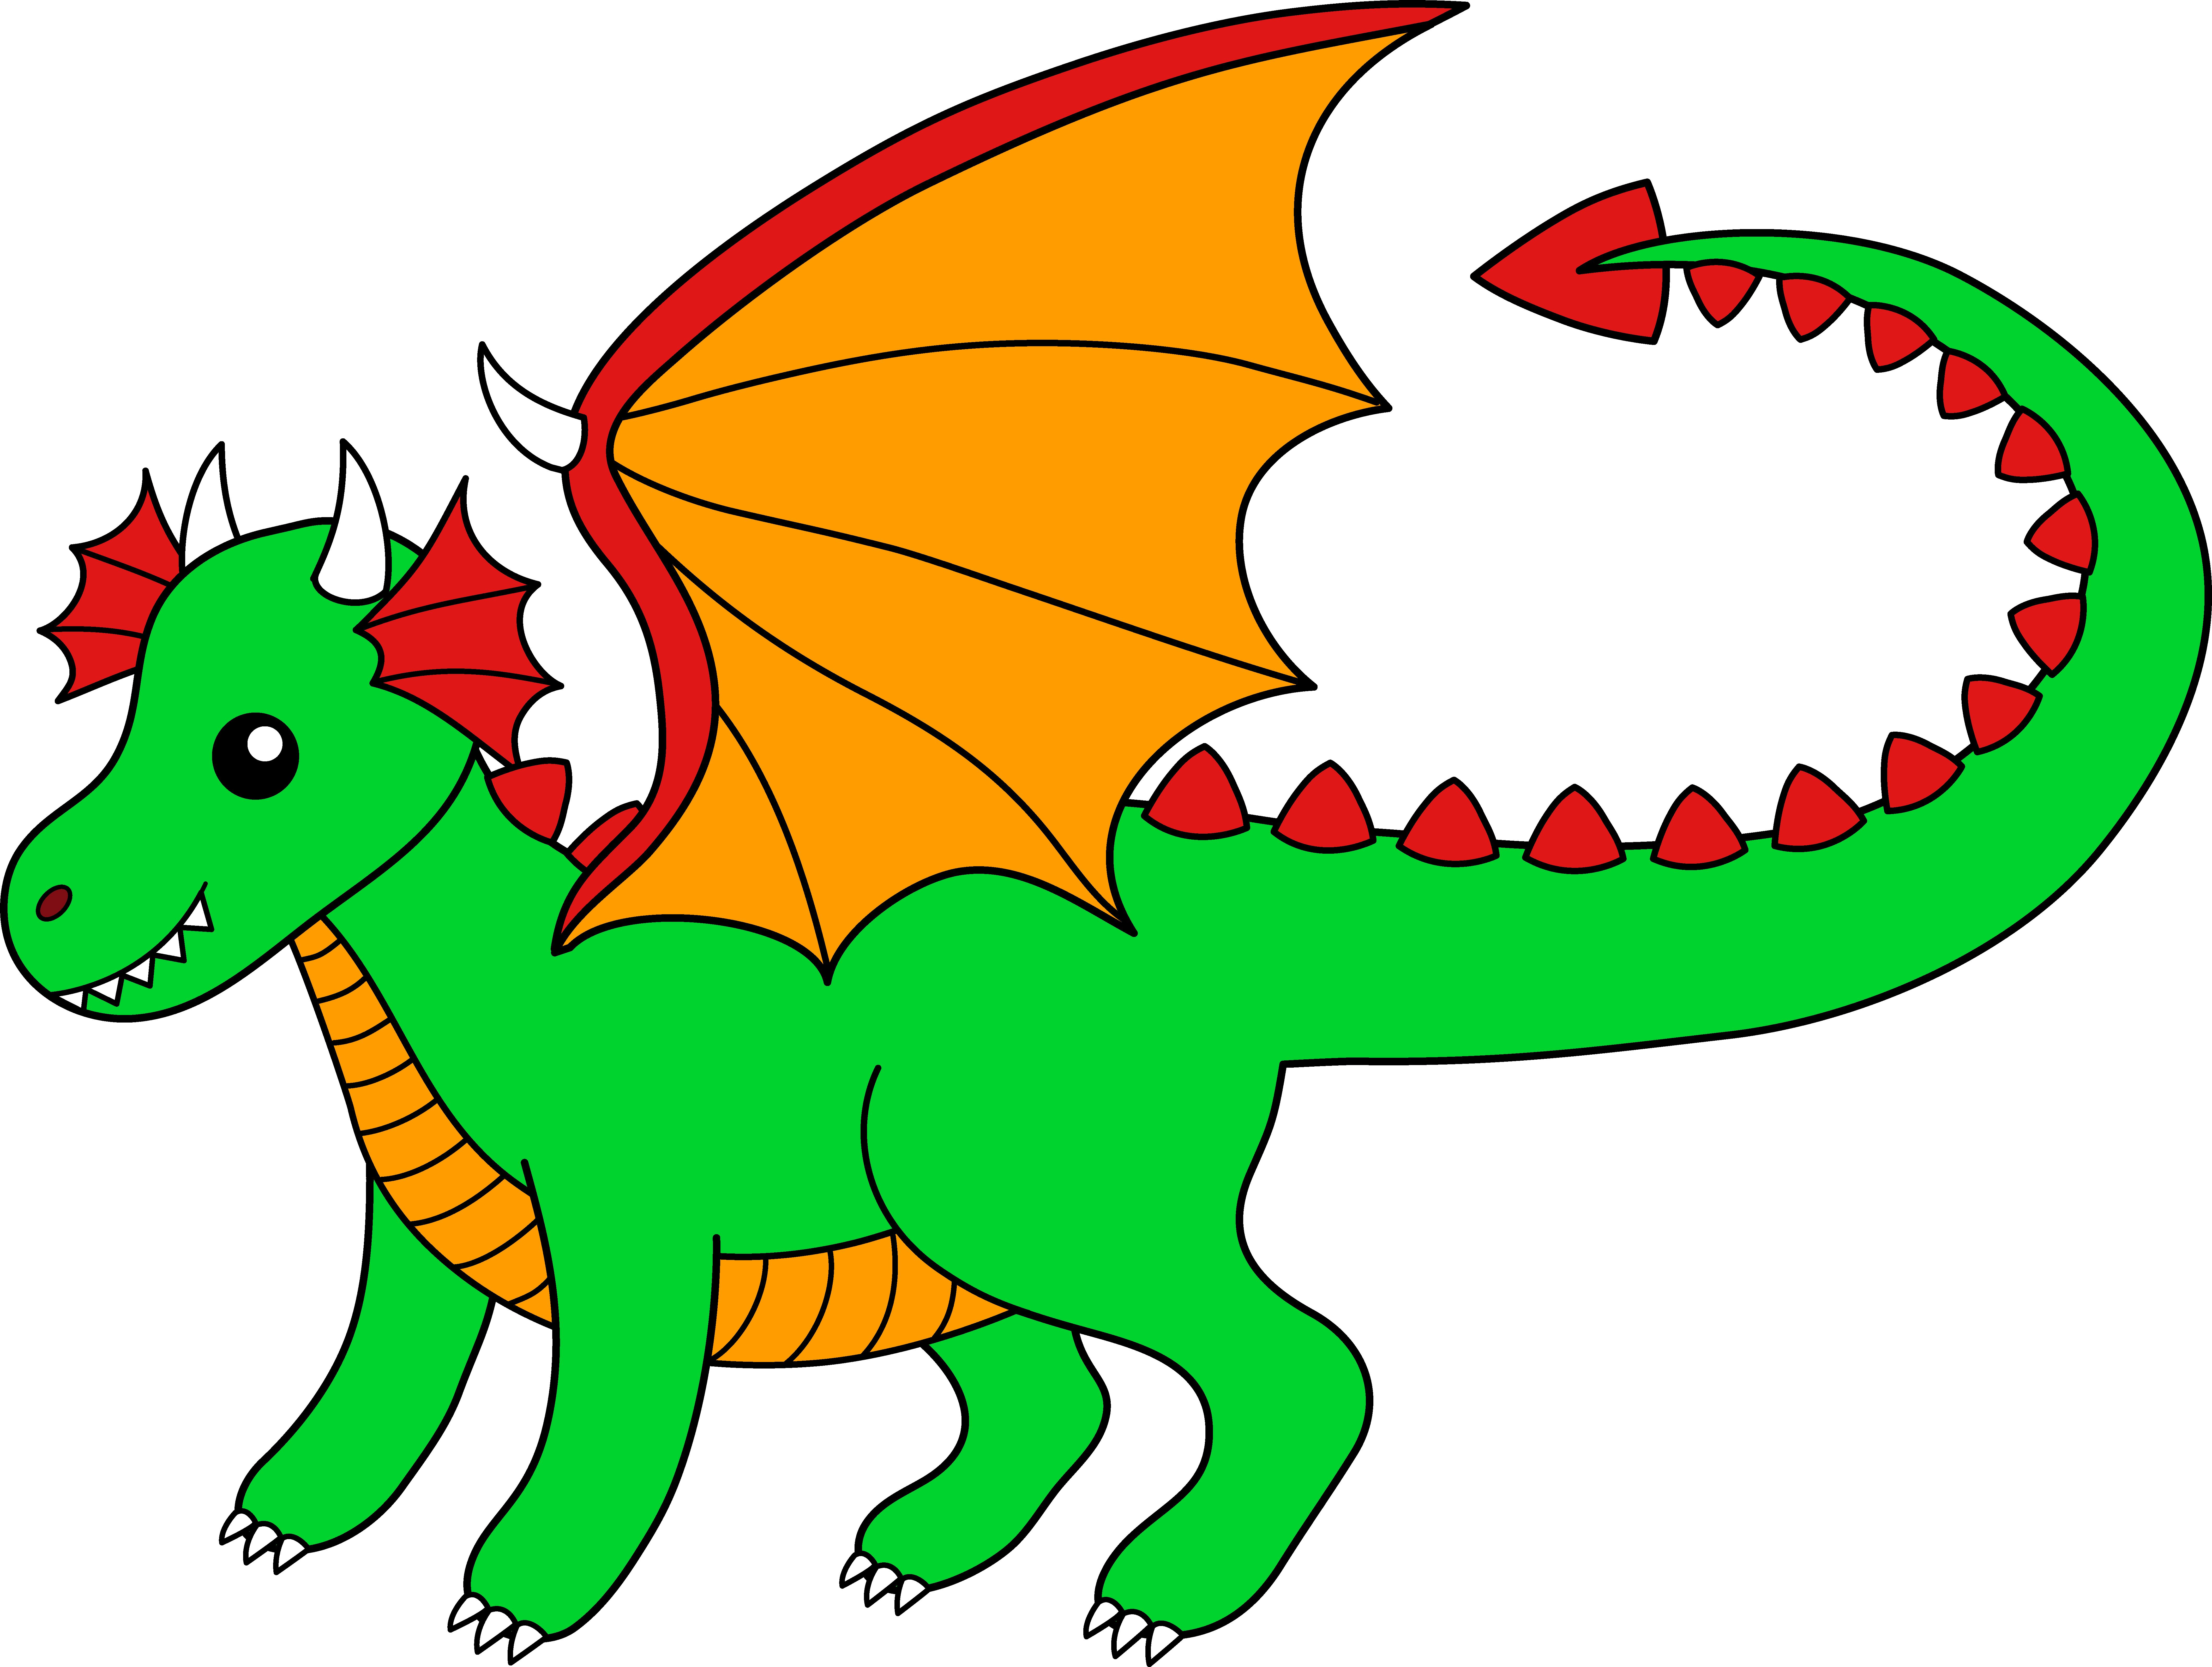 Cooking by the book clipart clipart transparent Dragon Clipart Cooking Free collection | Download and share Dragon ... clipart transparent